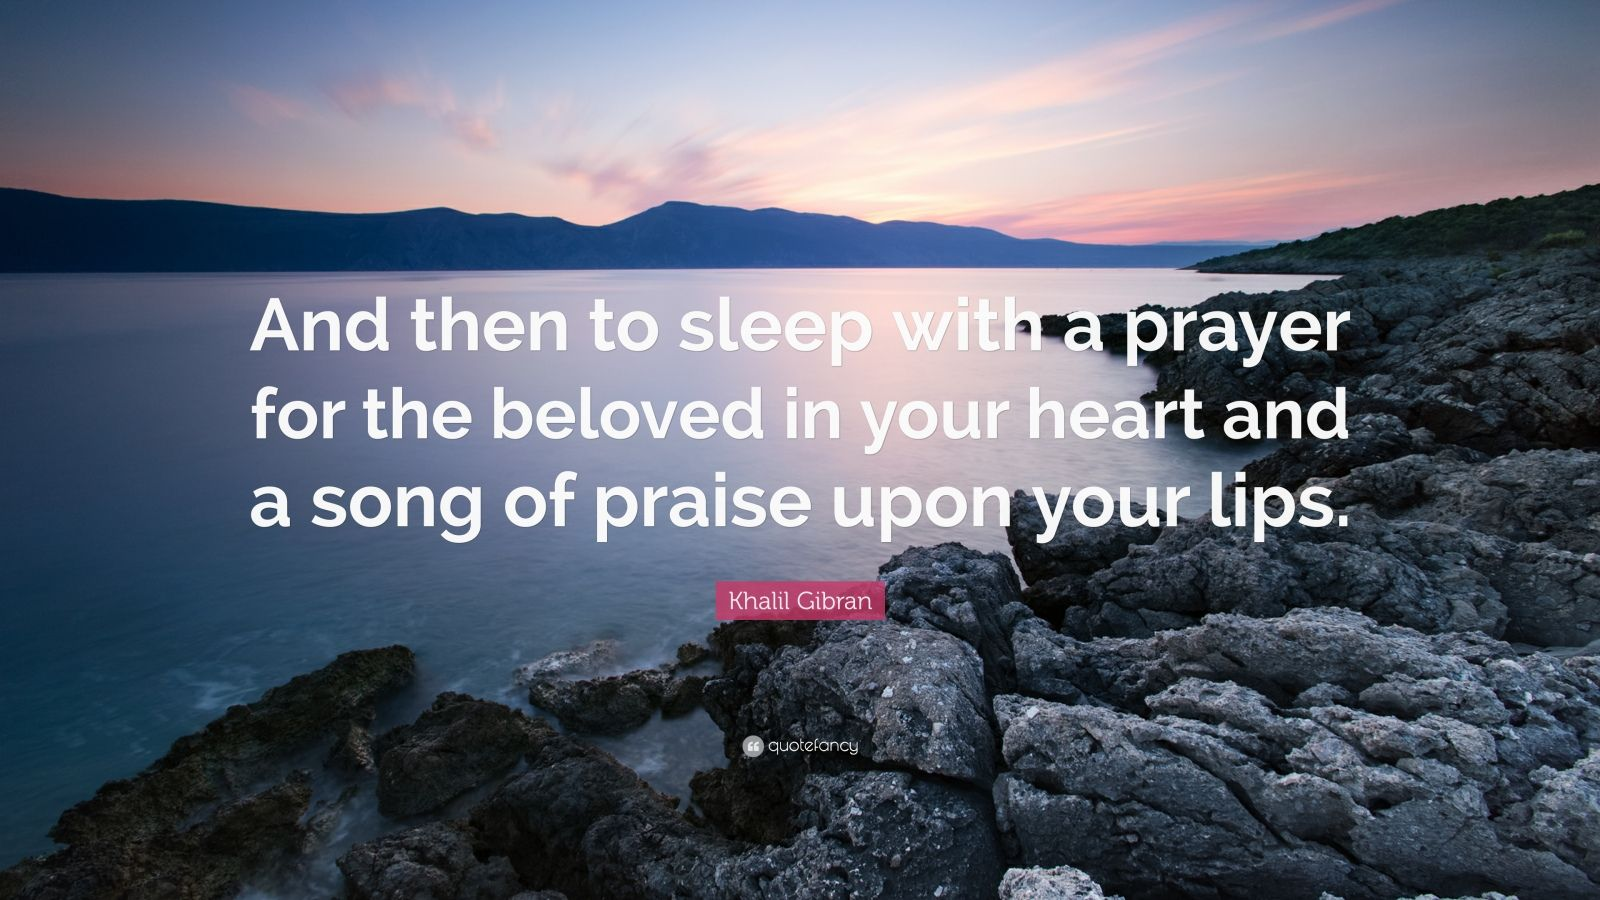 """Khalil Gibran Quote: """"And then to sleep with a prayer for the beloved in your heart and a song of praise upon your lips."""""""